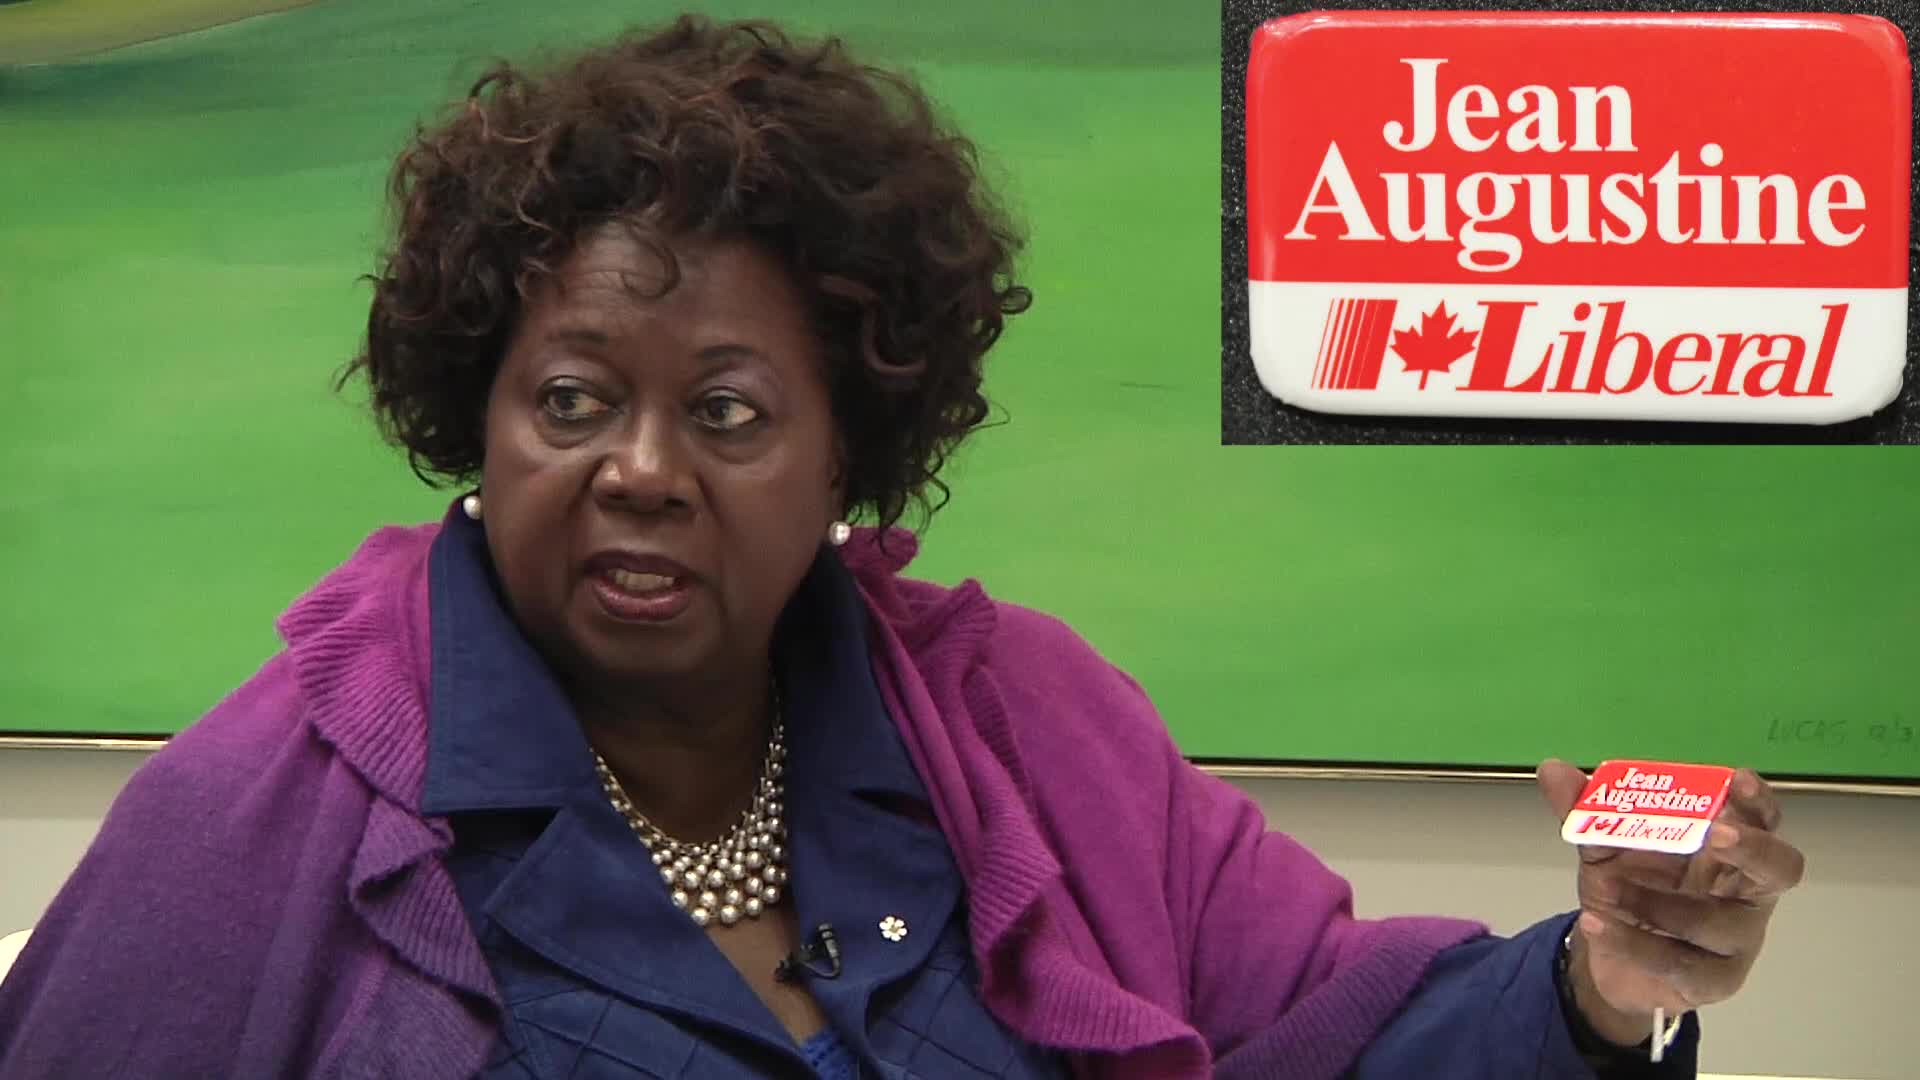 Jean Augustine interview: 1993 Jean Augustine campaign button